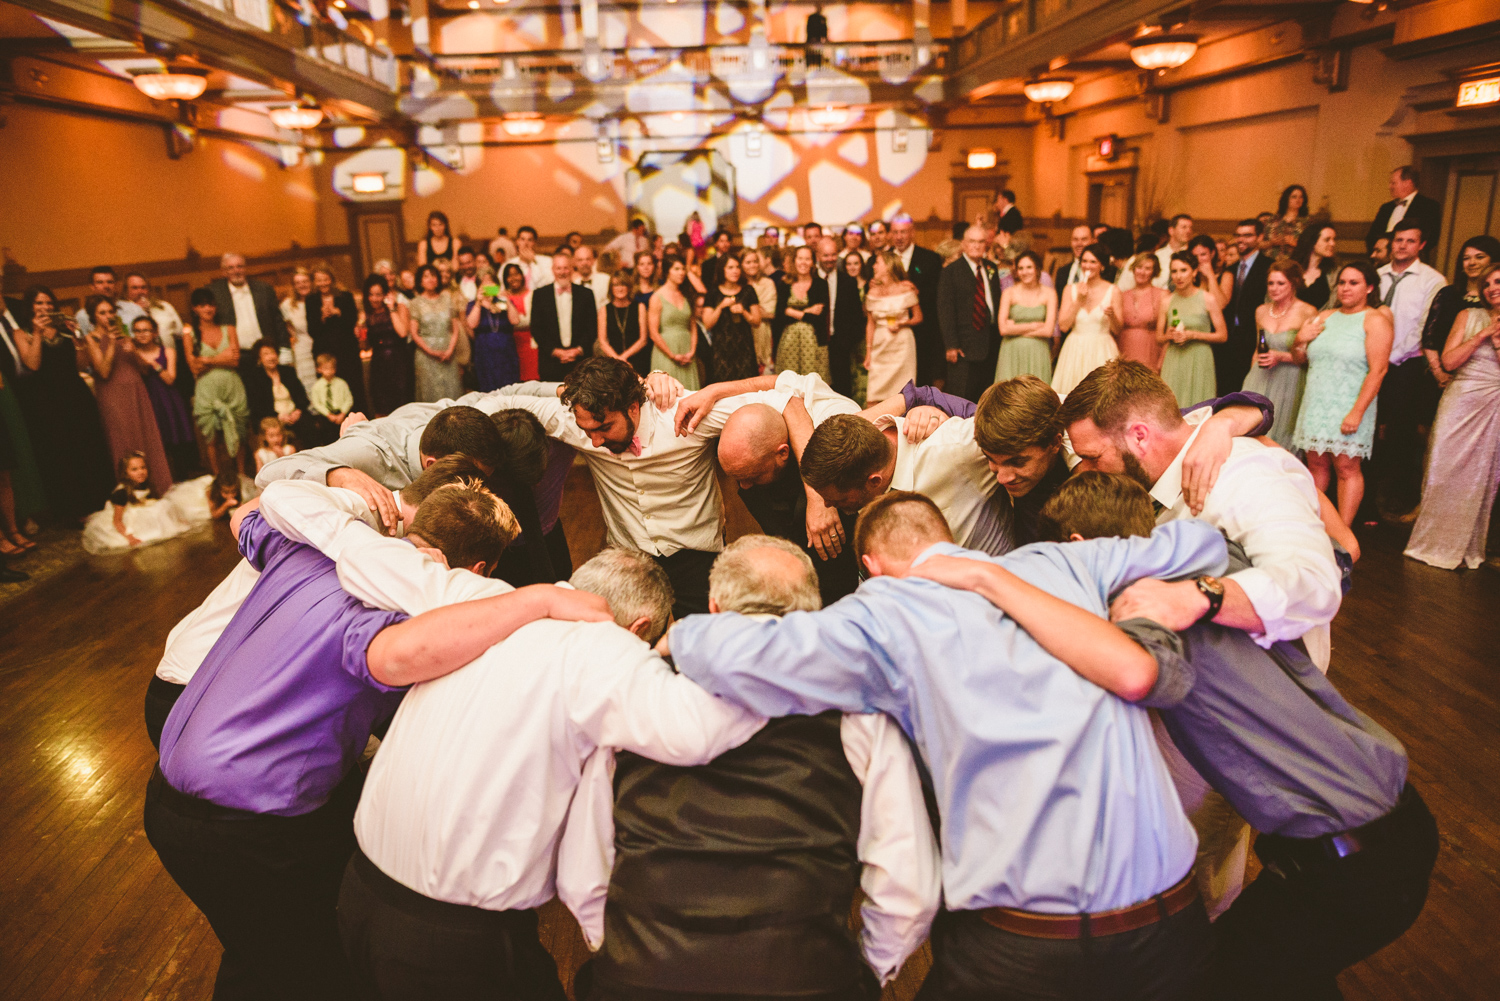 027 - special men family dance richmond wedding photographer nathan mitchell.jpg